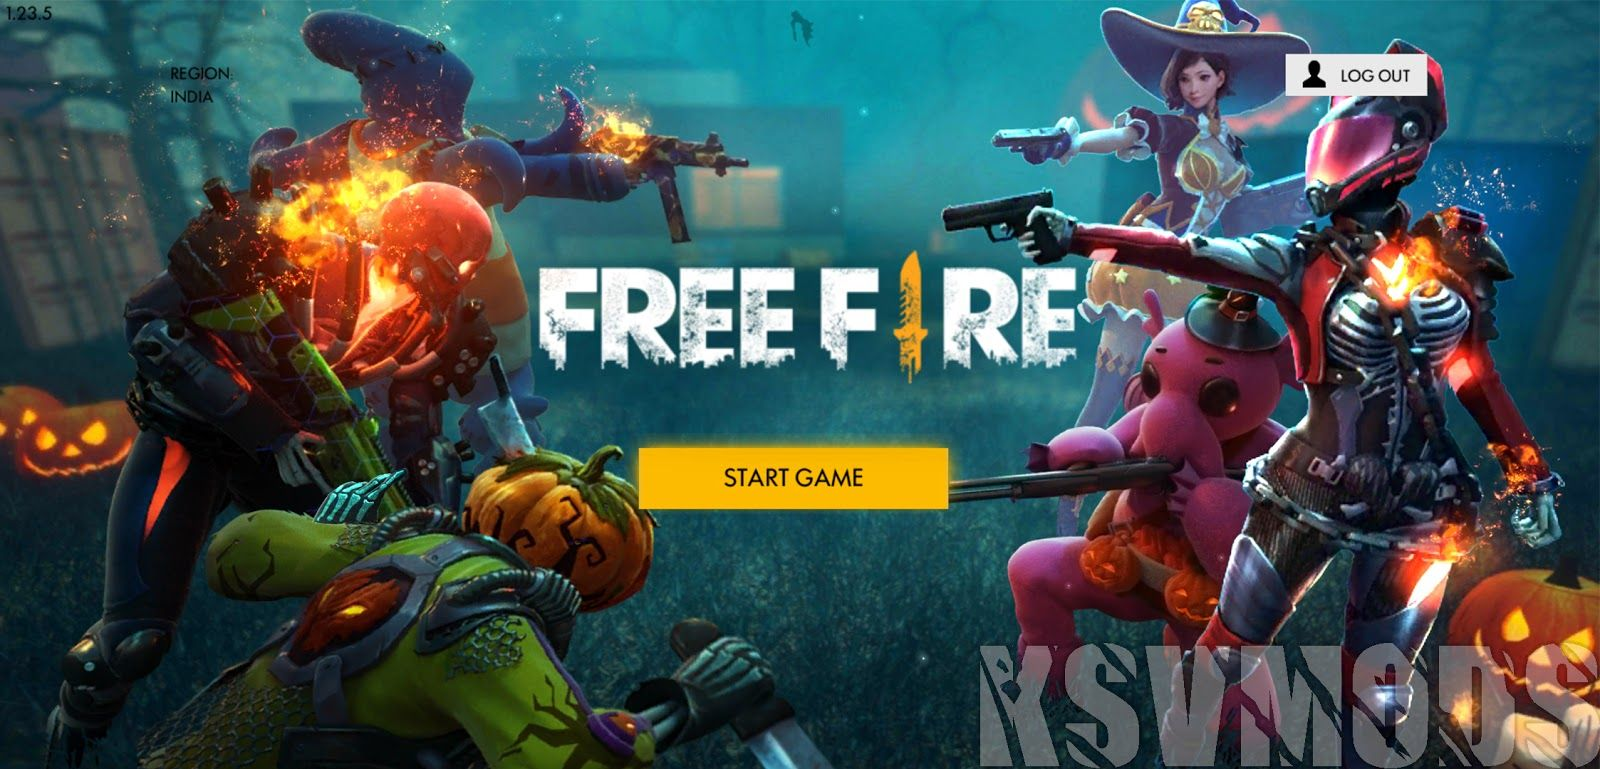 Hack Garena Free Fire Free Diamonds And Coins 2019 No